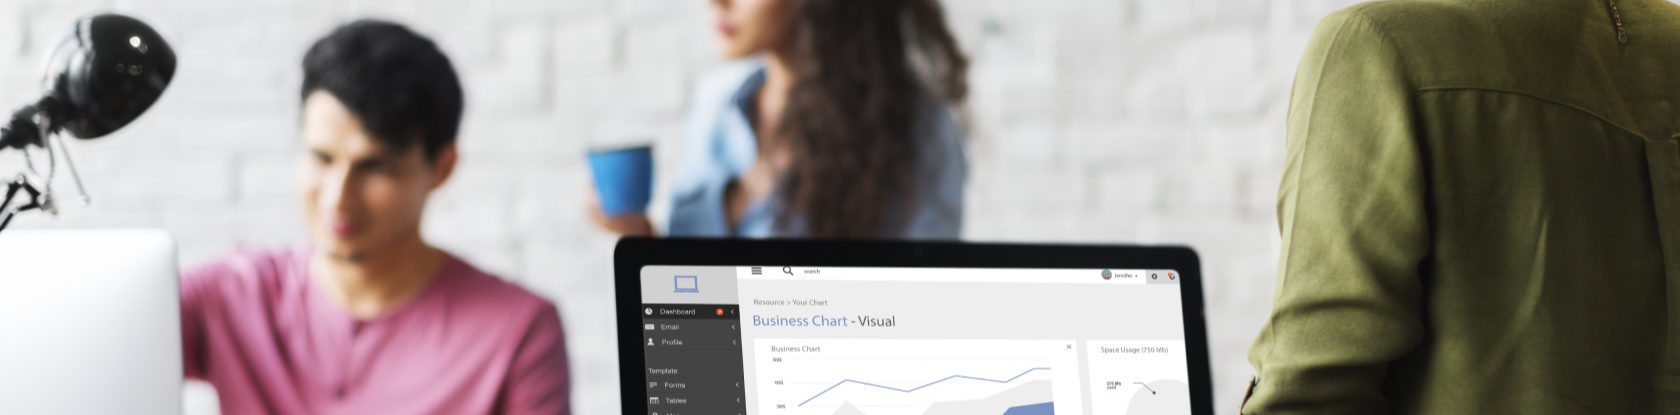 Data Insights Featured